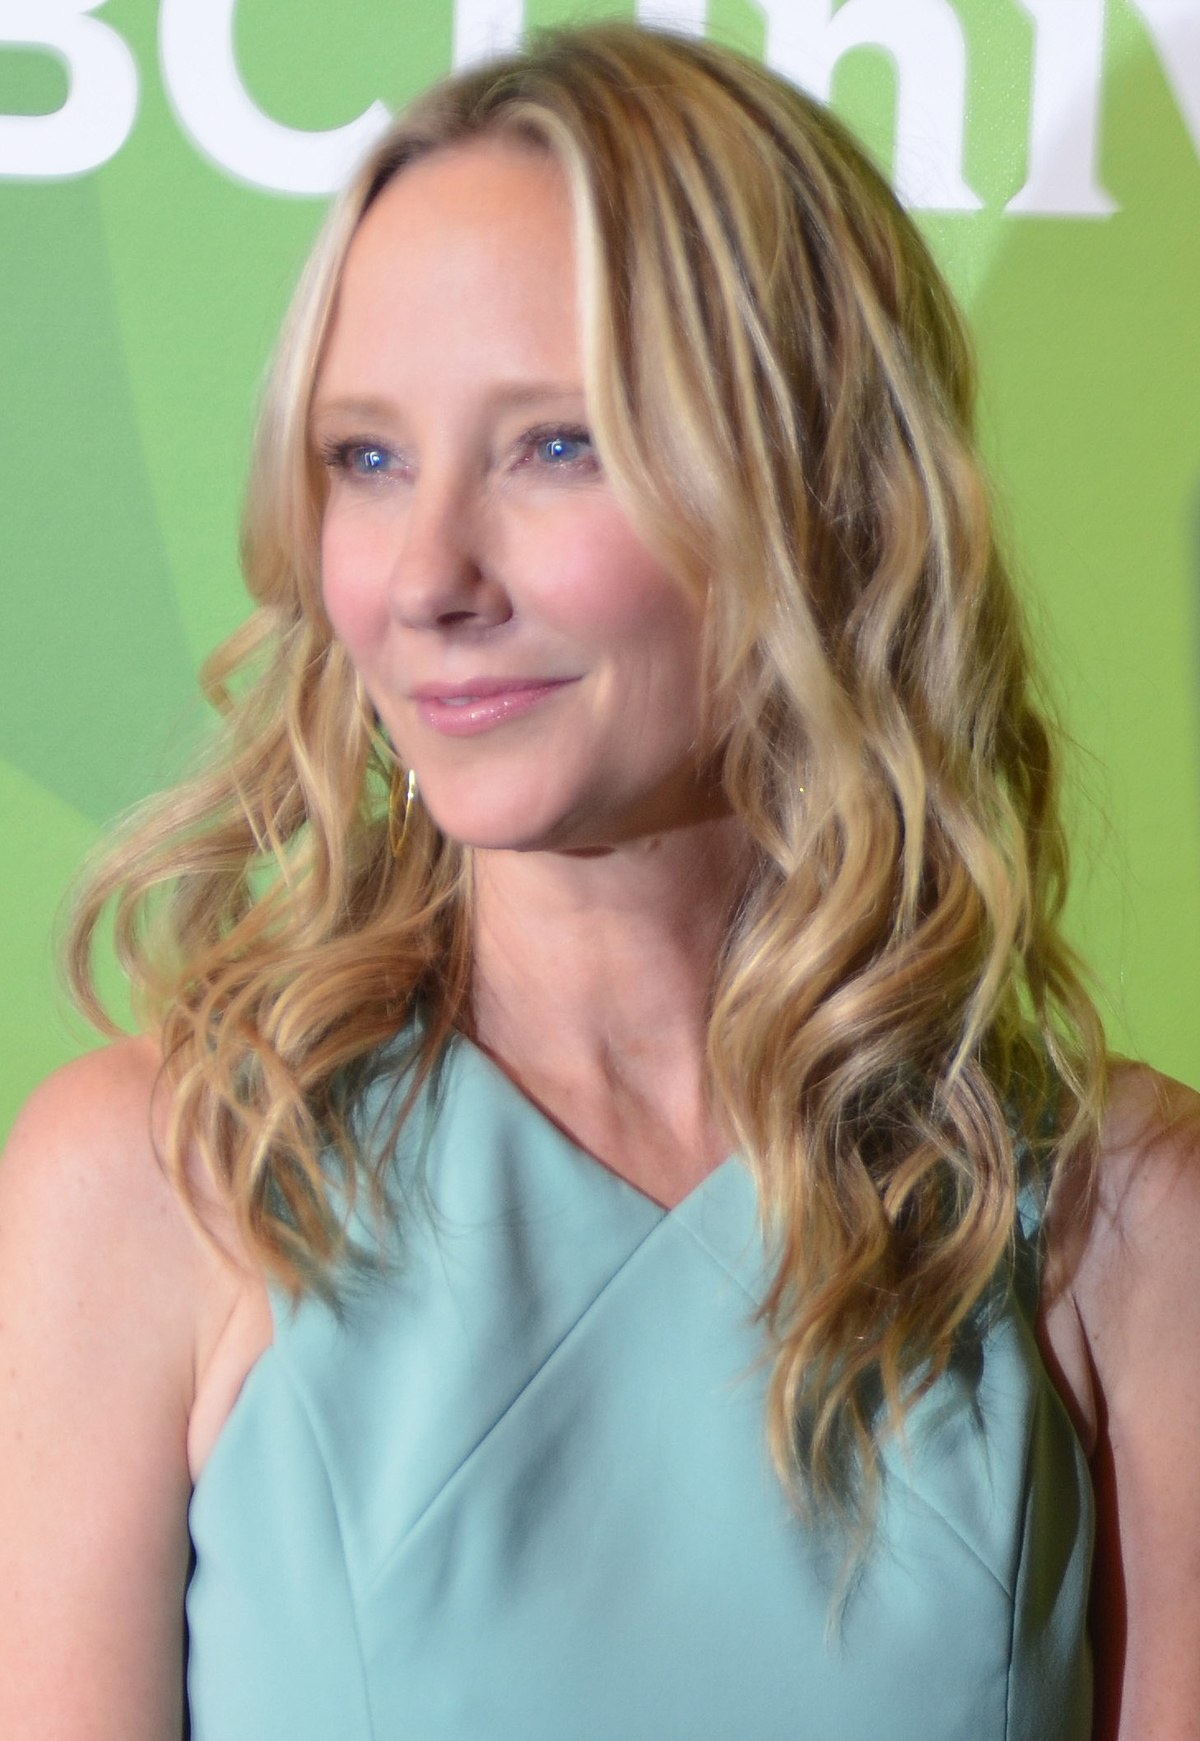 1200px-Anne_Heche_July_14%2C_2014_%28cropped%29.jpg